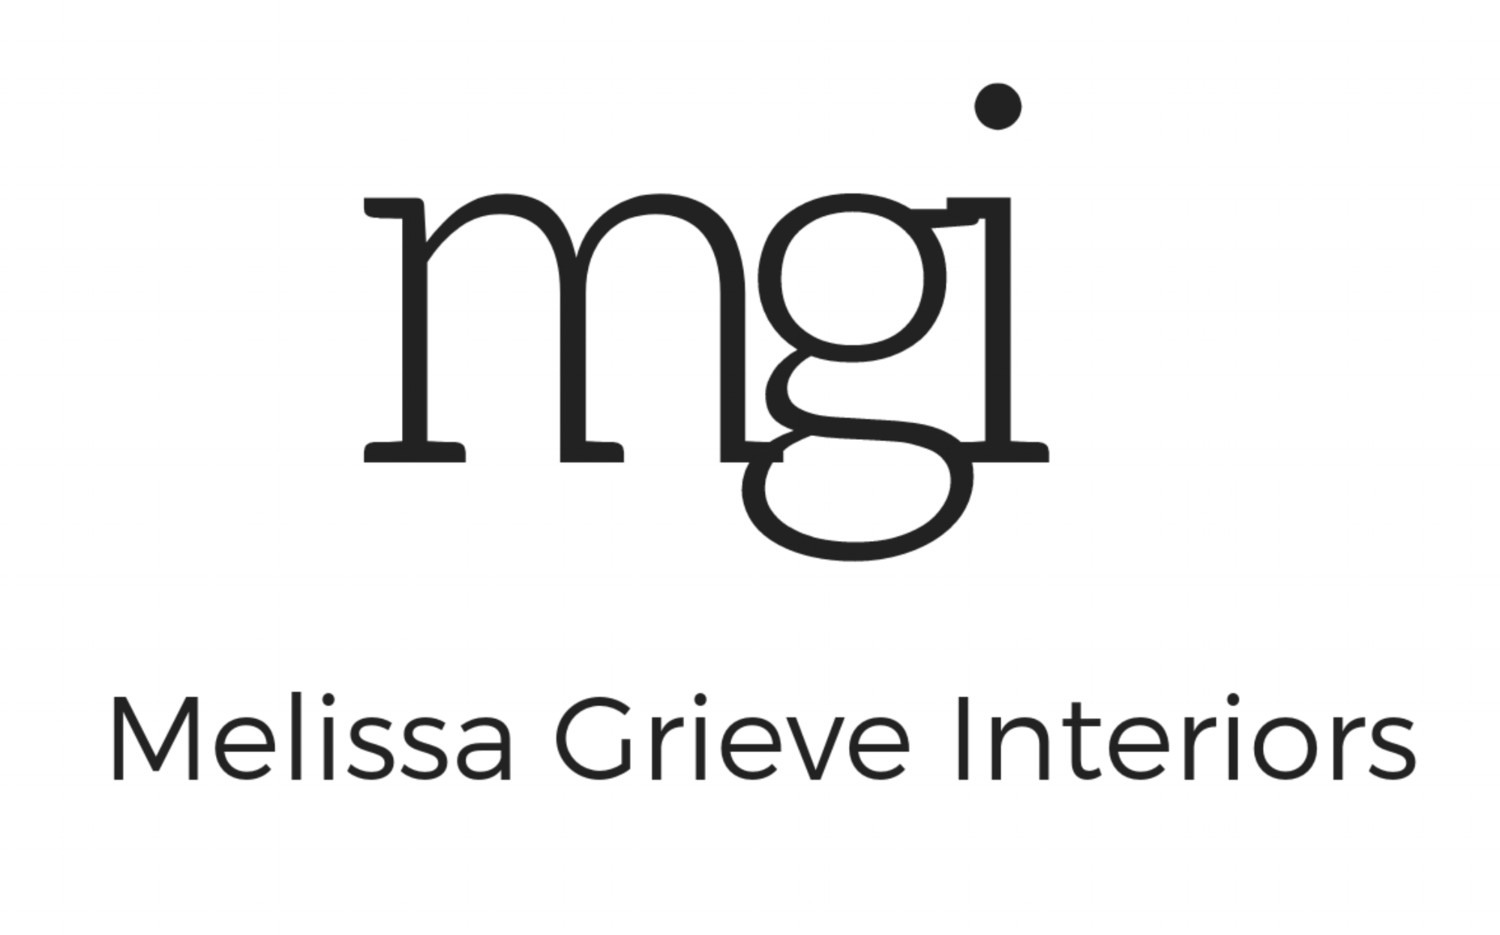 Melissa Grieve Interiors | Online And Guelph In-Person